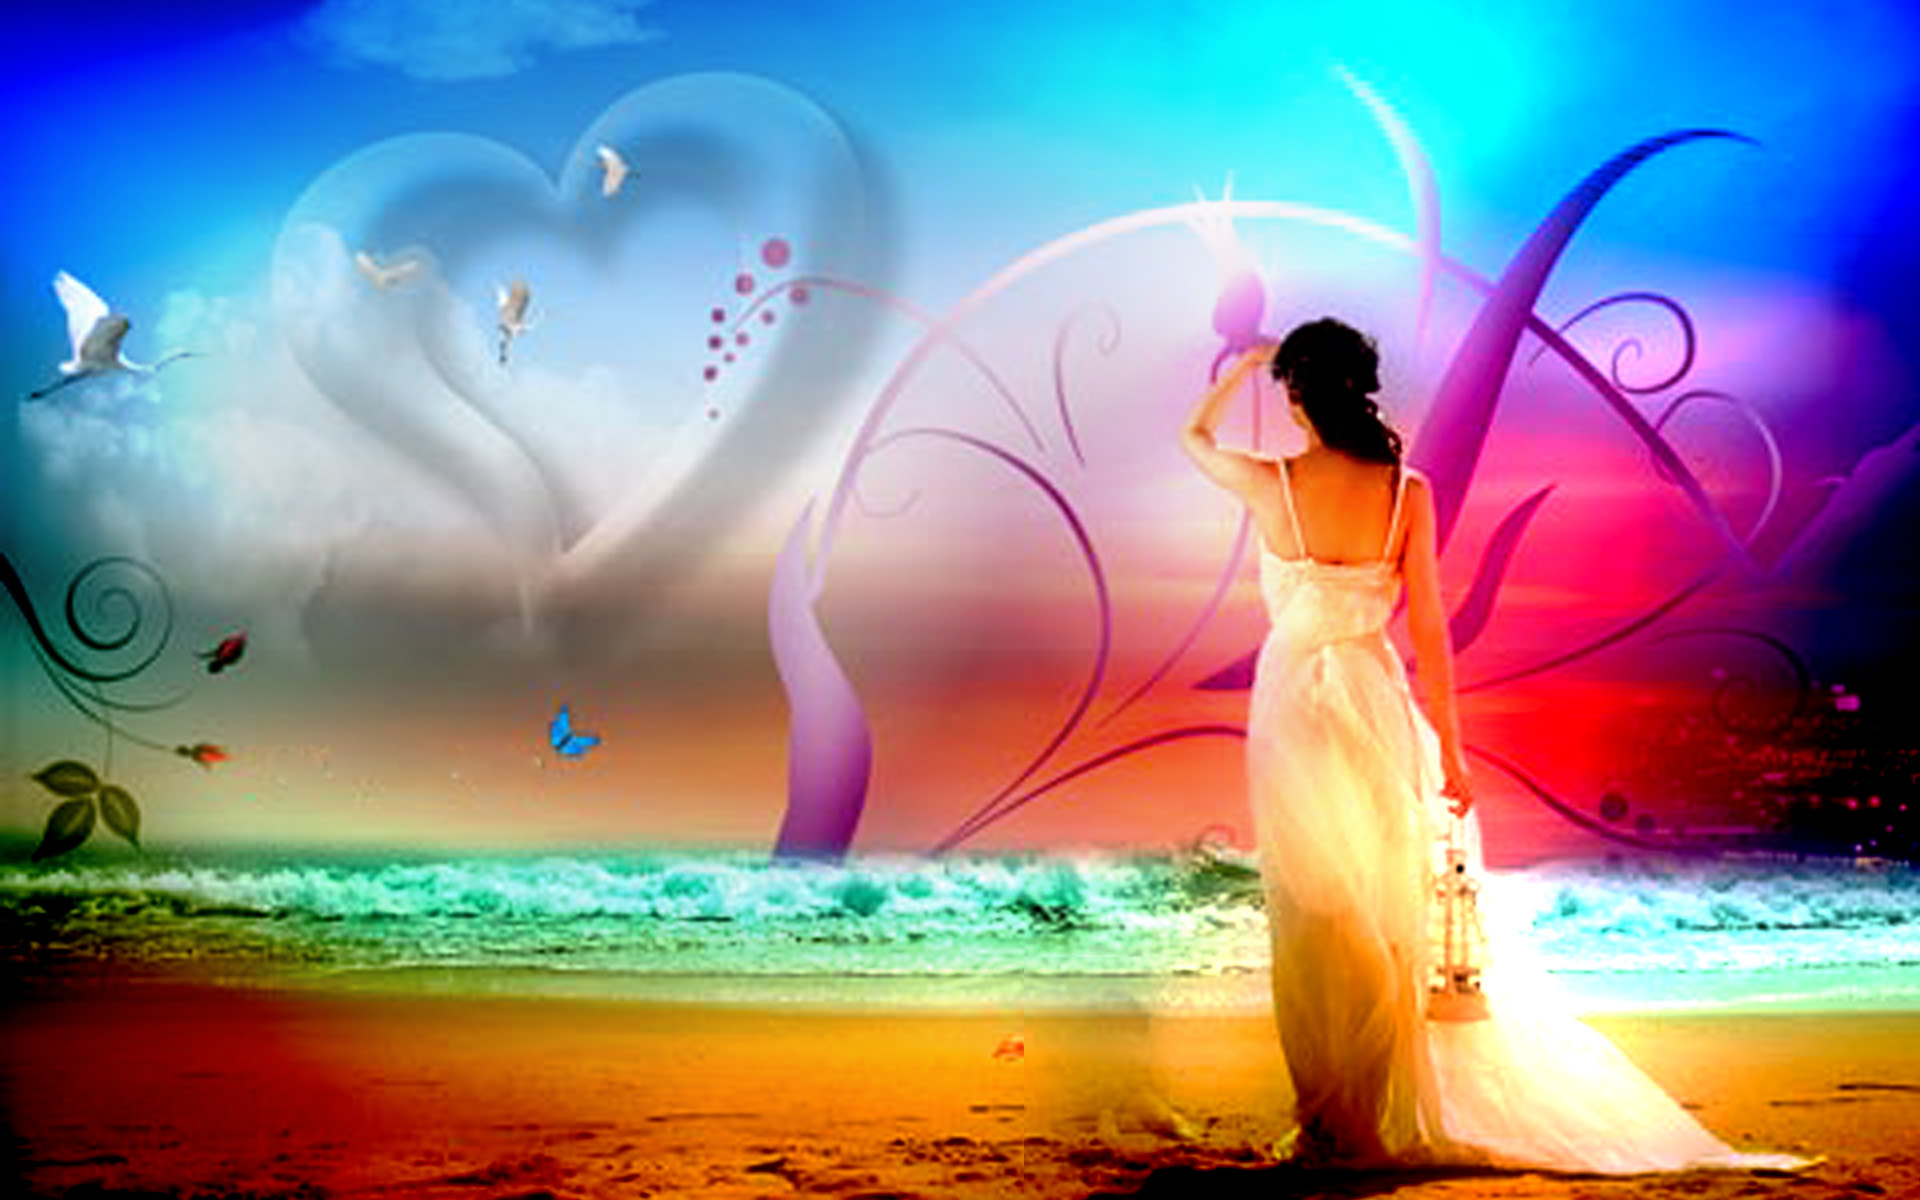 Romantic Wallpapers